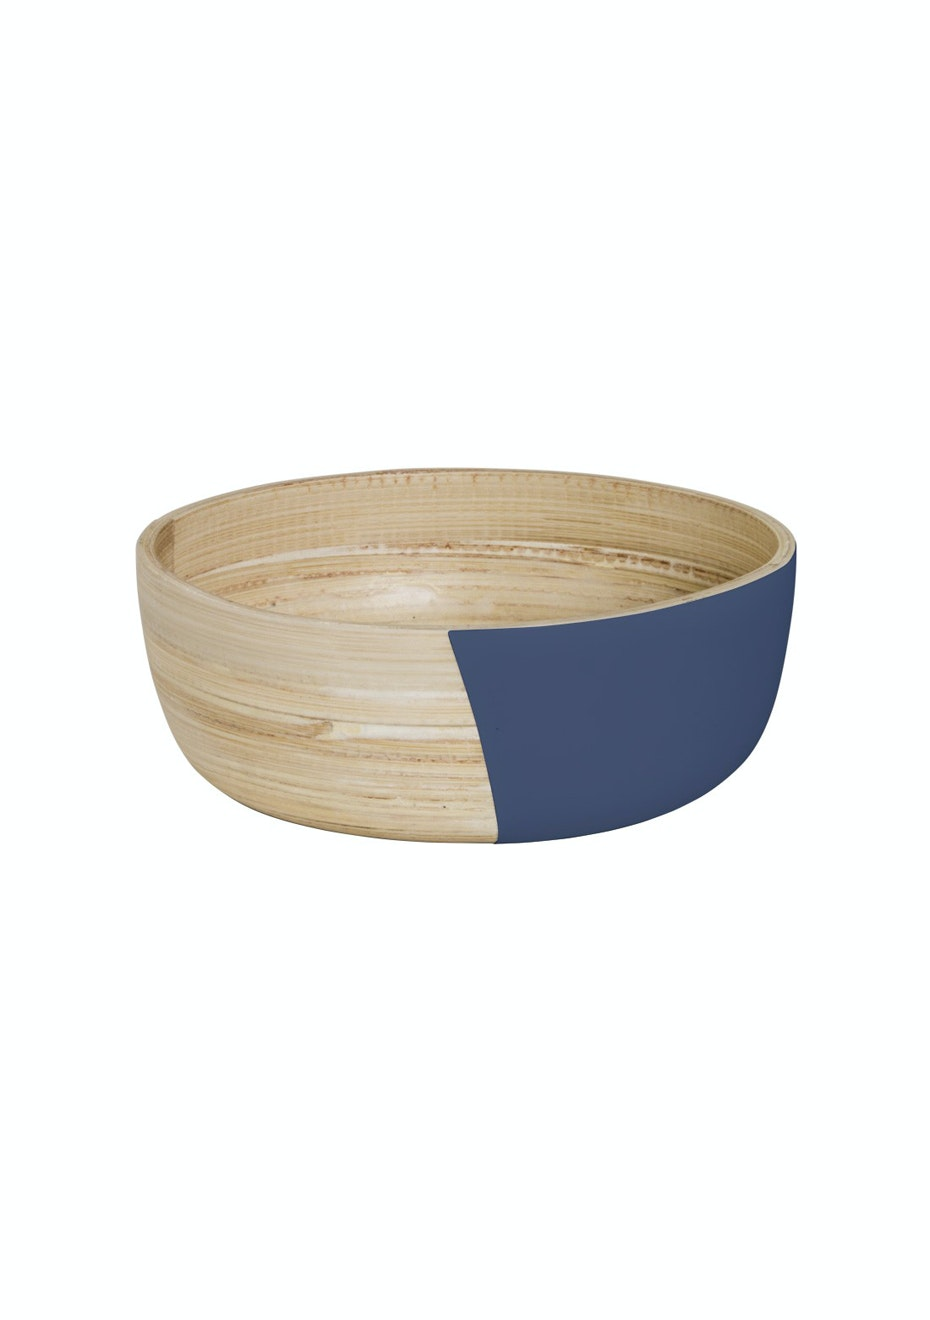 Jason - Lacquered Wooden Bowl Small - Ink